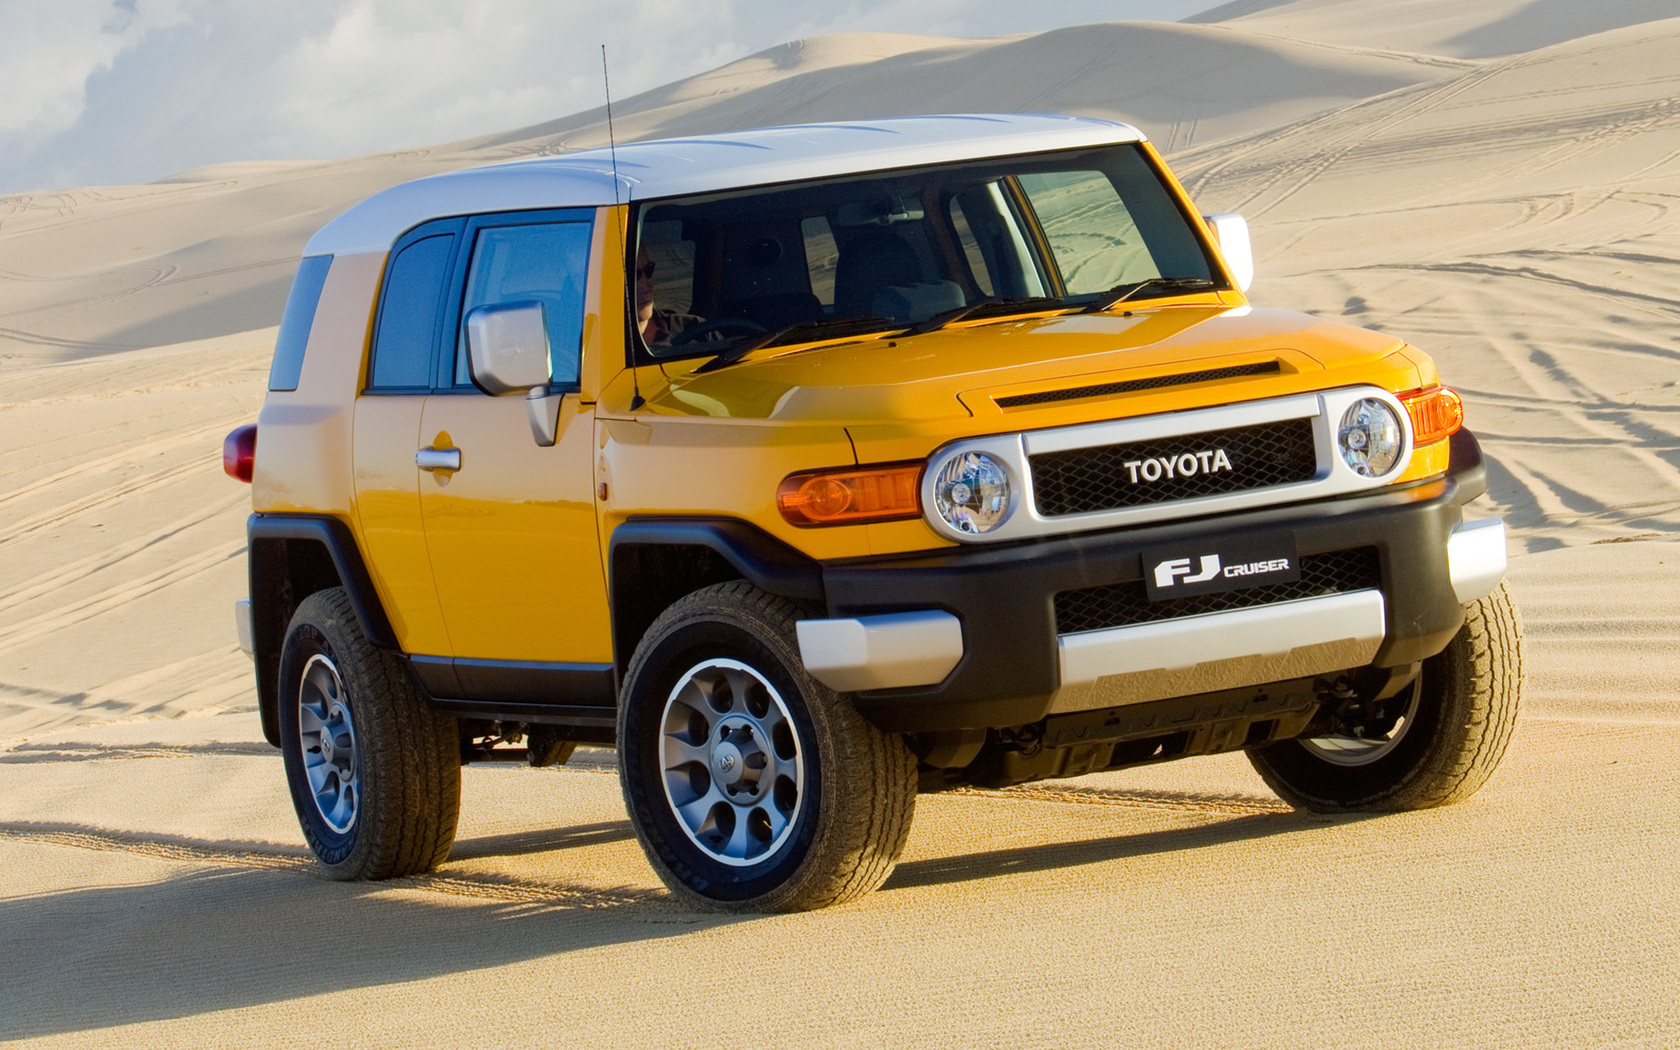 2018 toyota fj cruiser. Black Bedroom Furniture Sets. Home Design Ideas